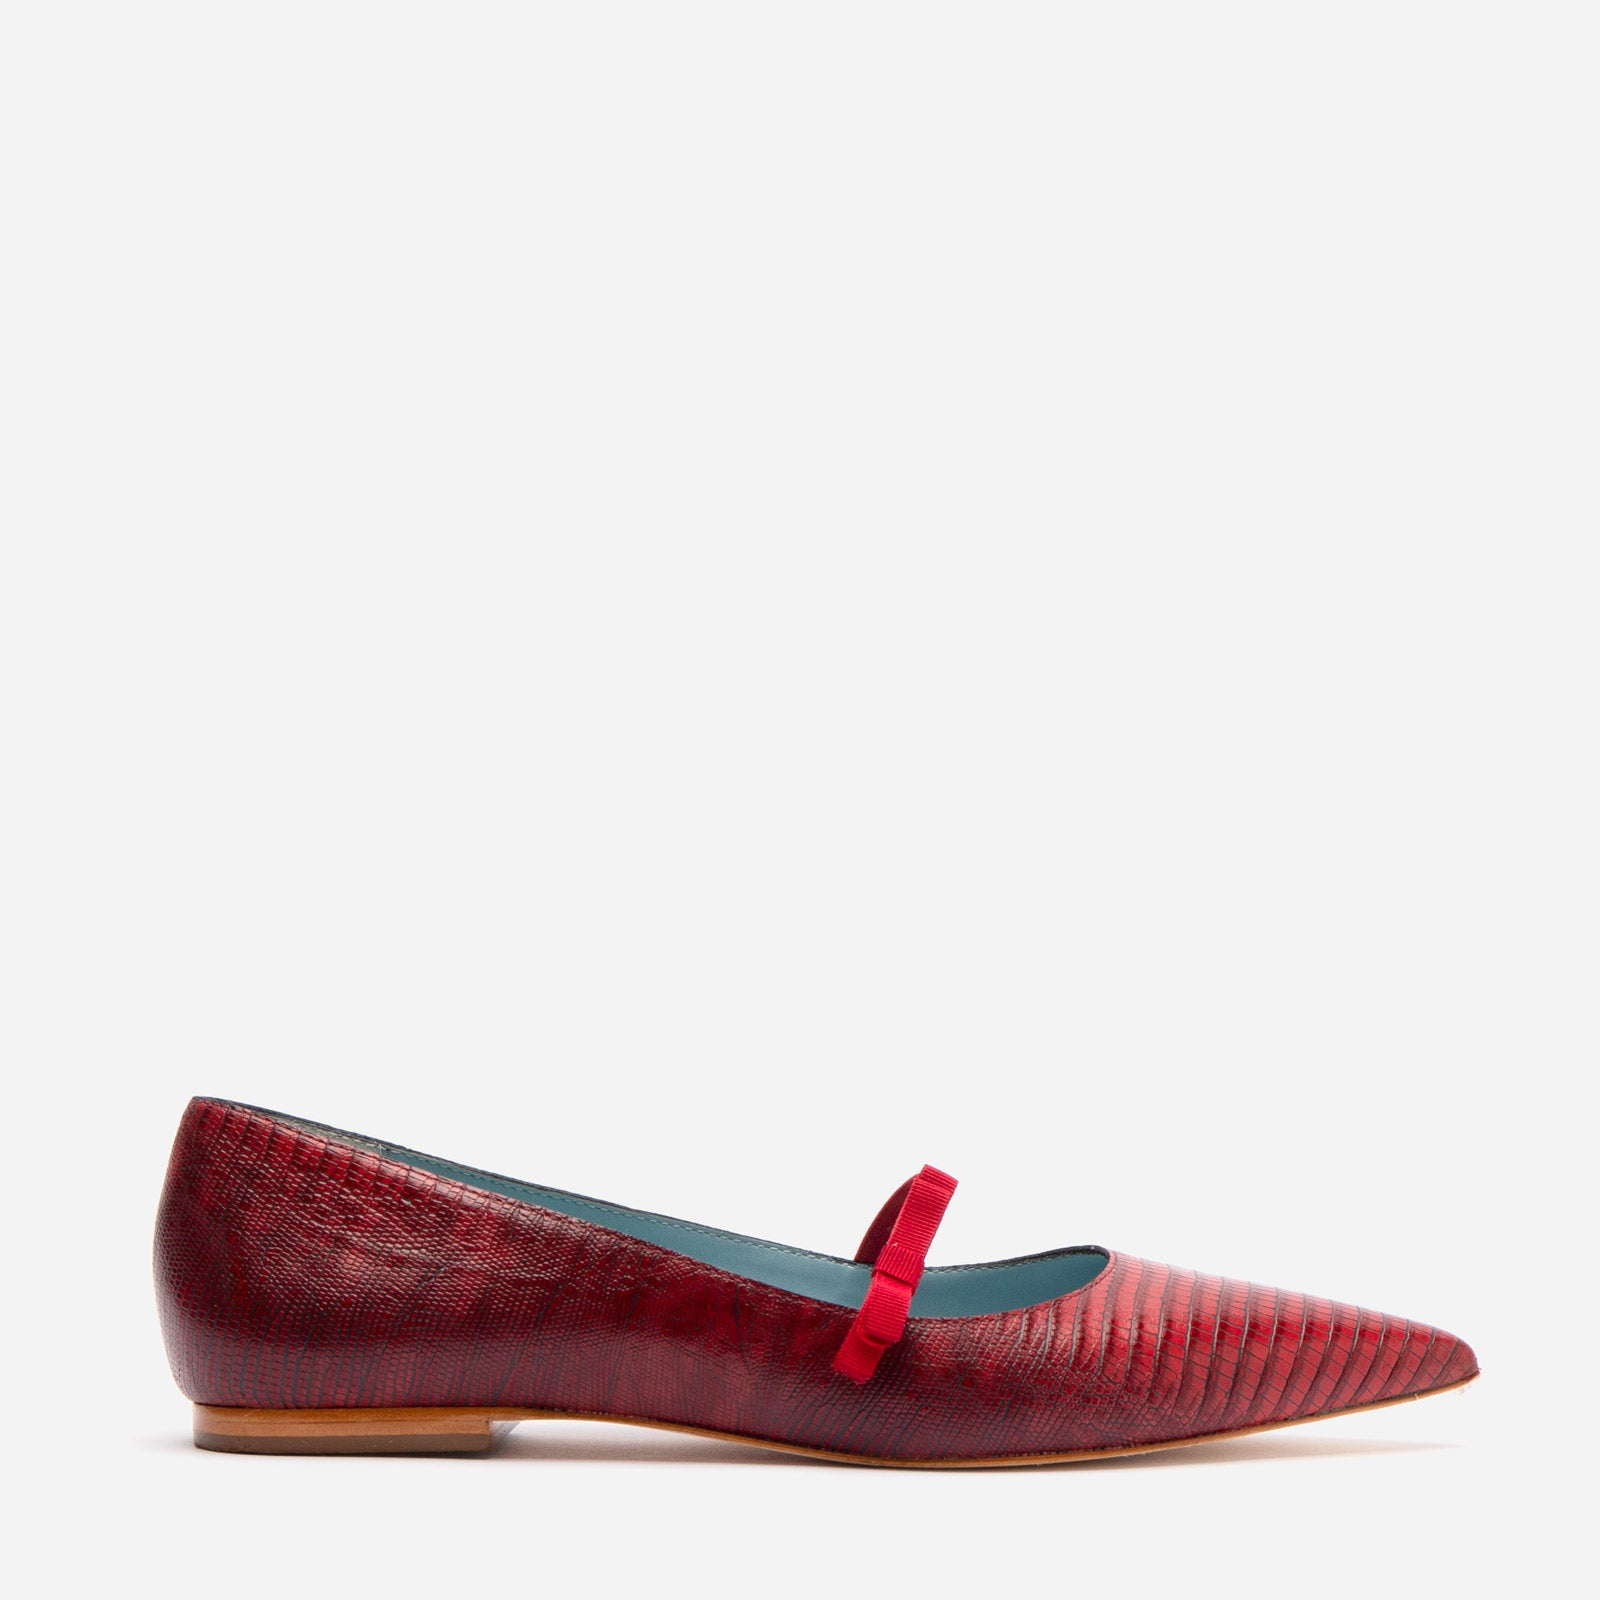 Pamela Mary Jane Flat Lizard Embossed Red - Frances Valentine